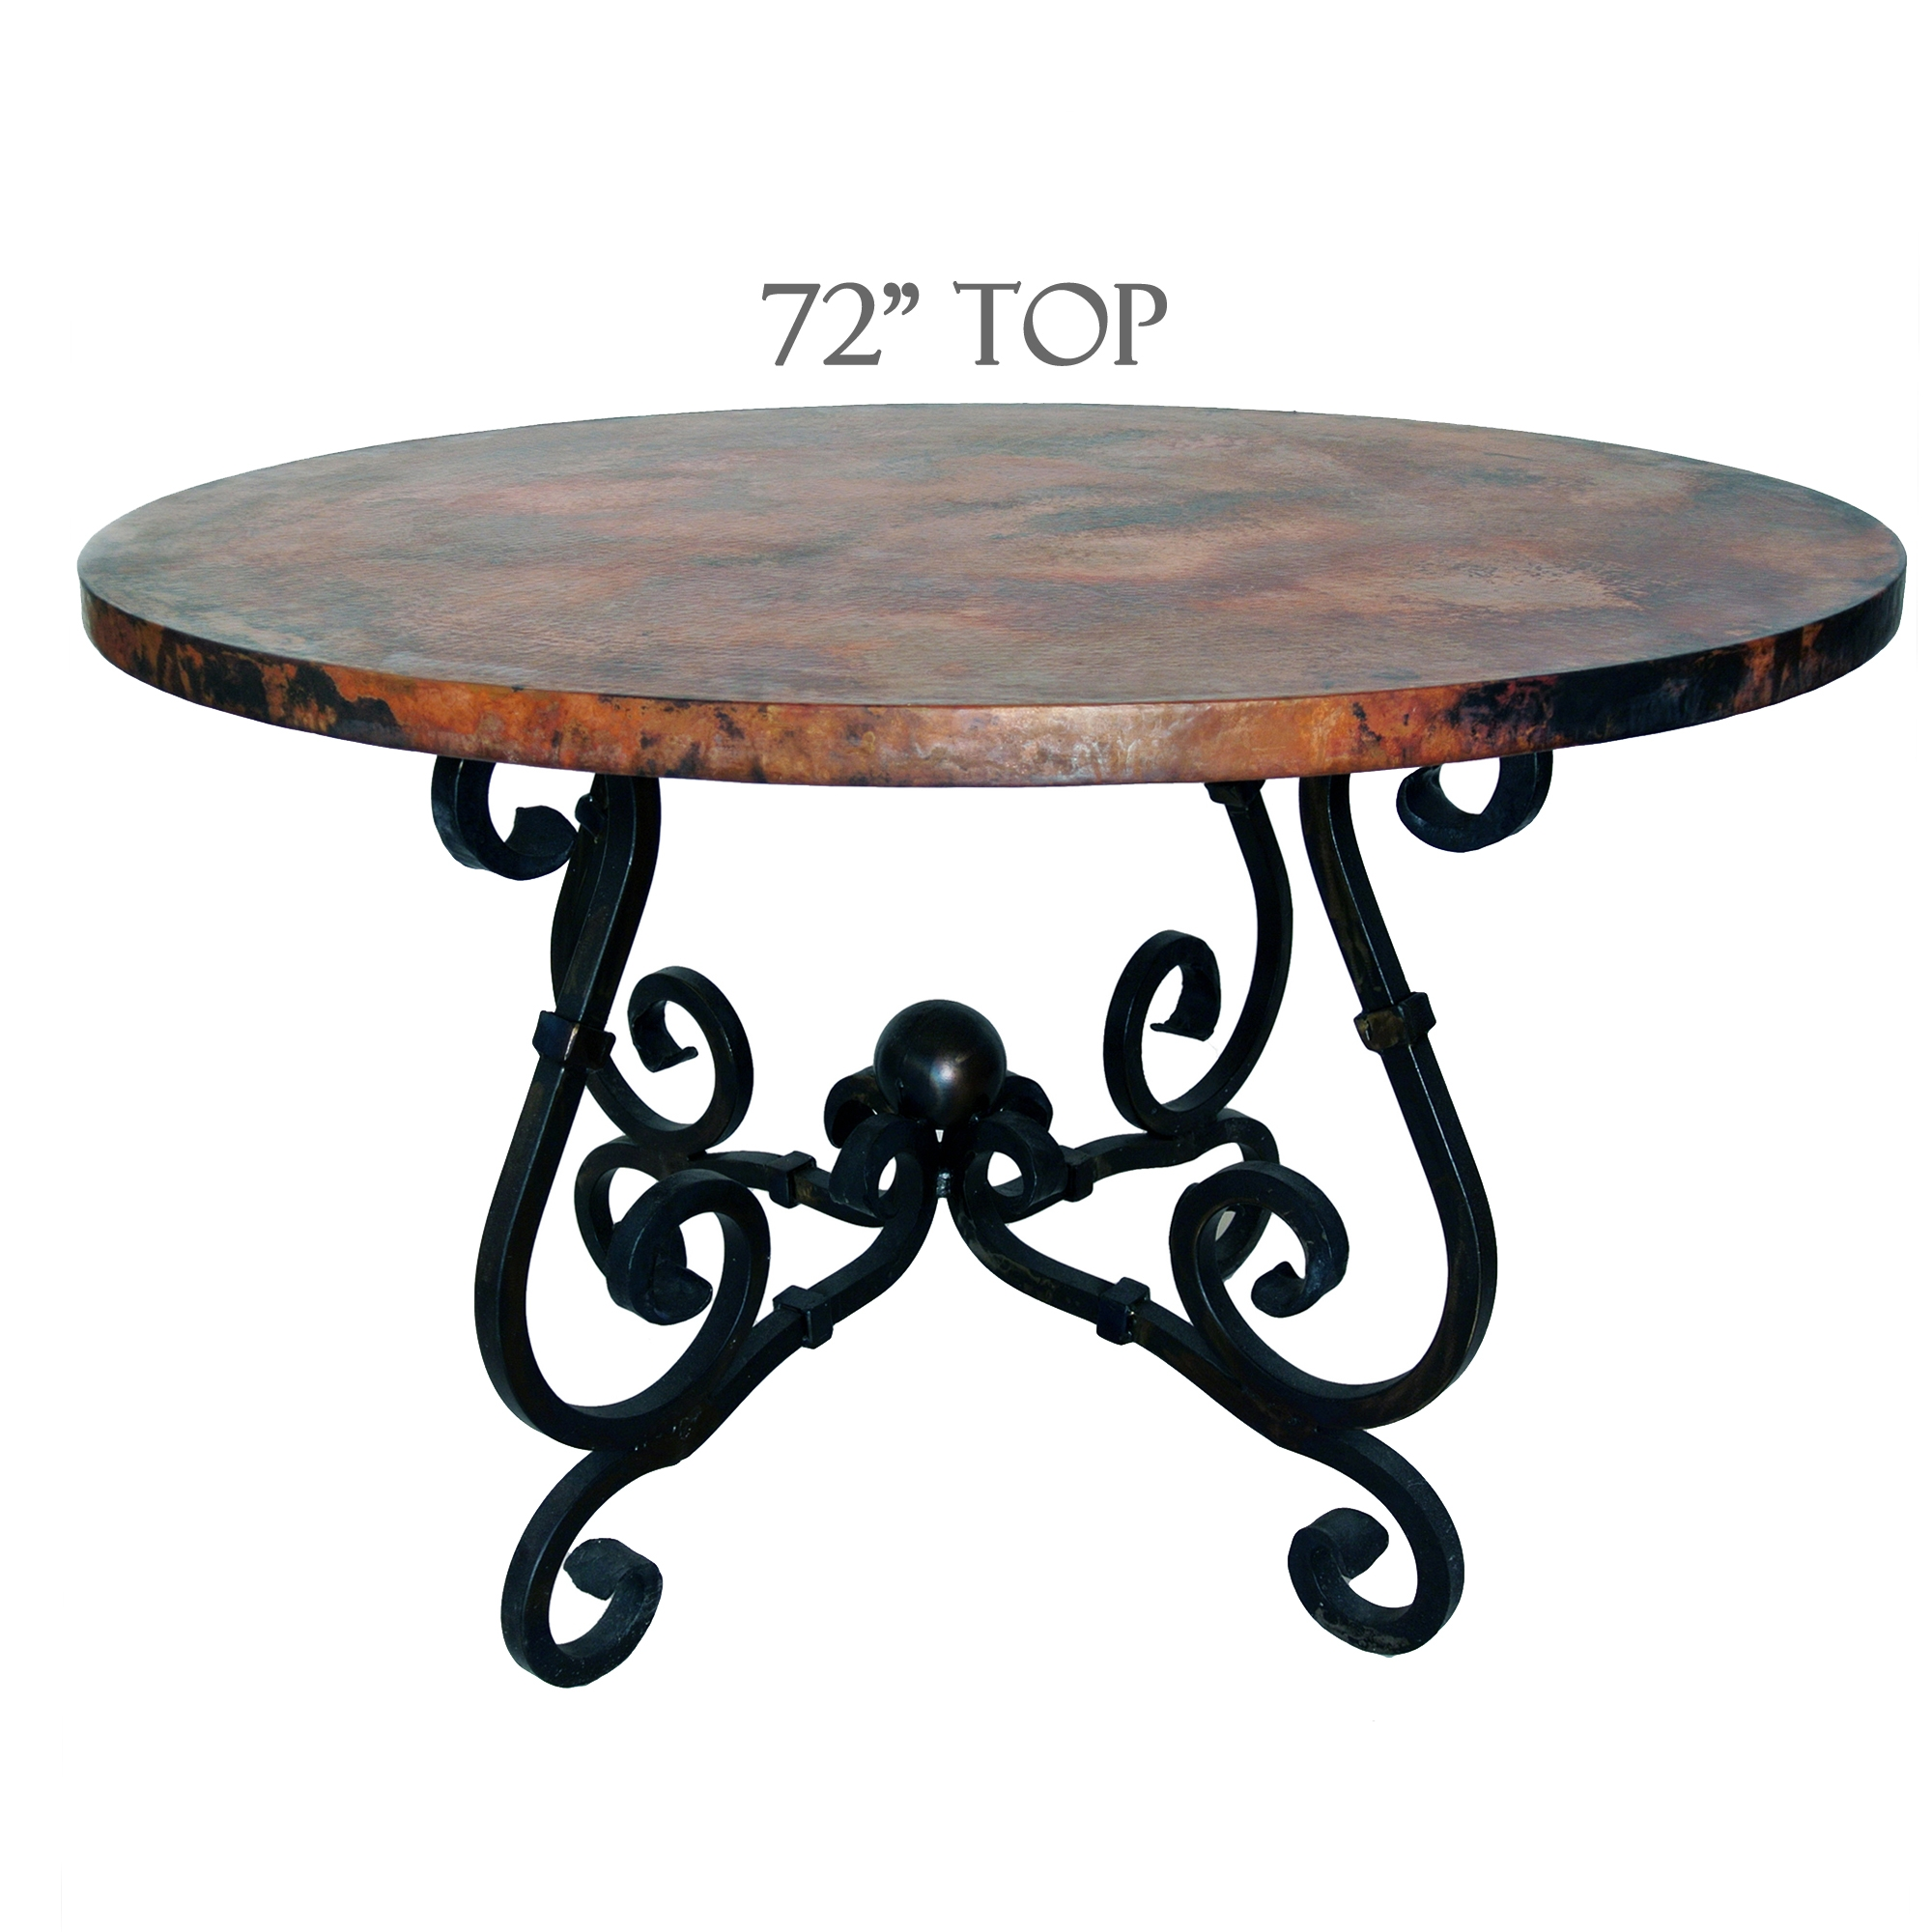 1960 s dining table wrought iron base and glass top tables - French Dining Table 72in Diameter Copper Top Timeless Wrought